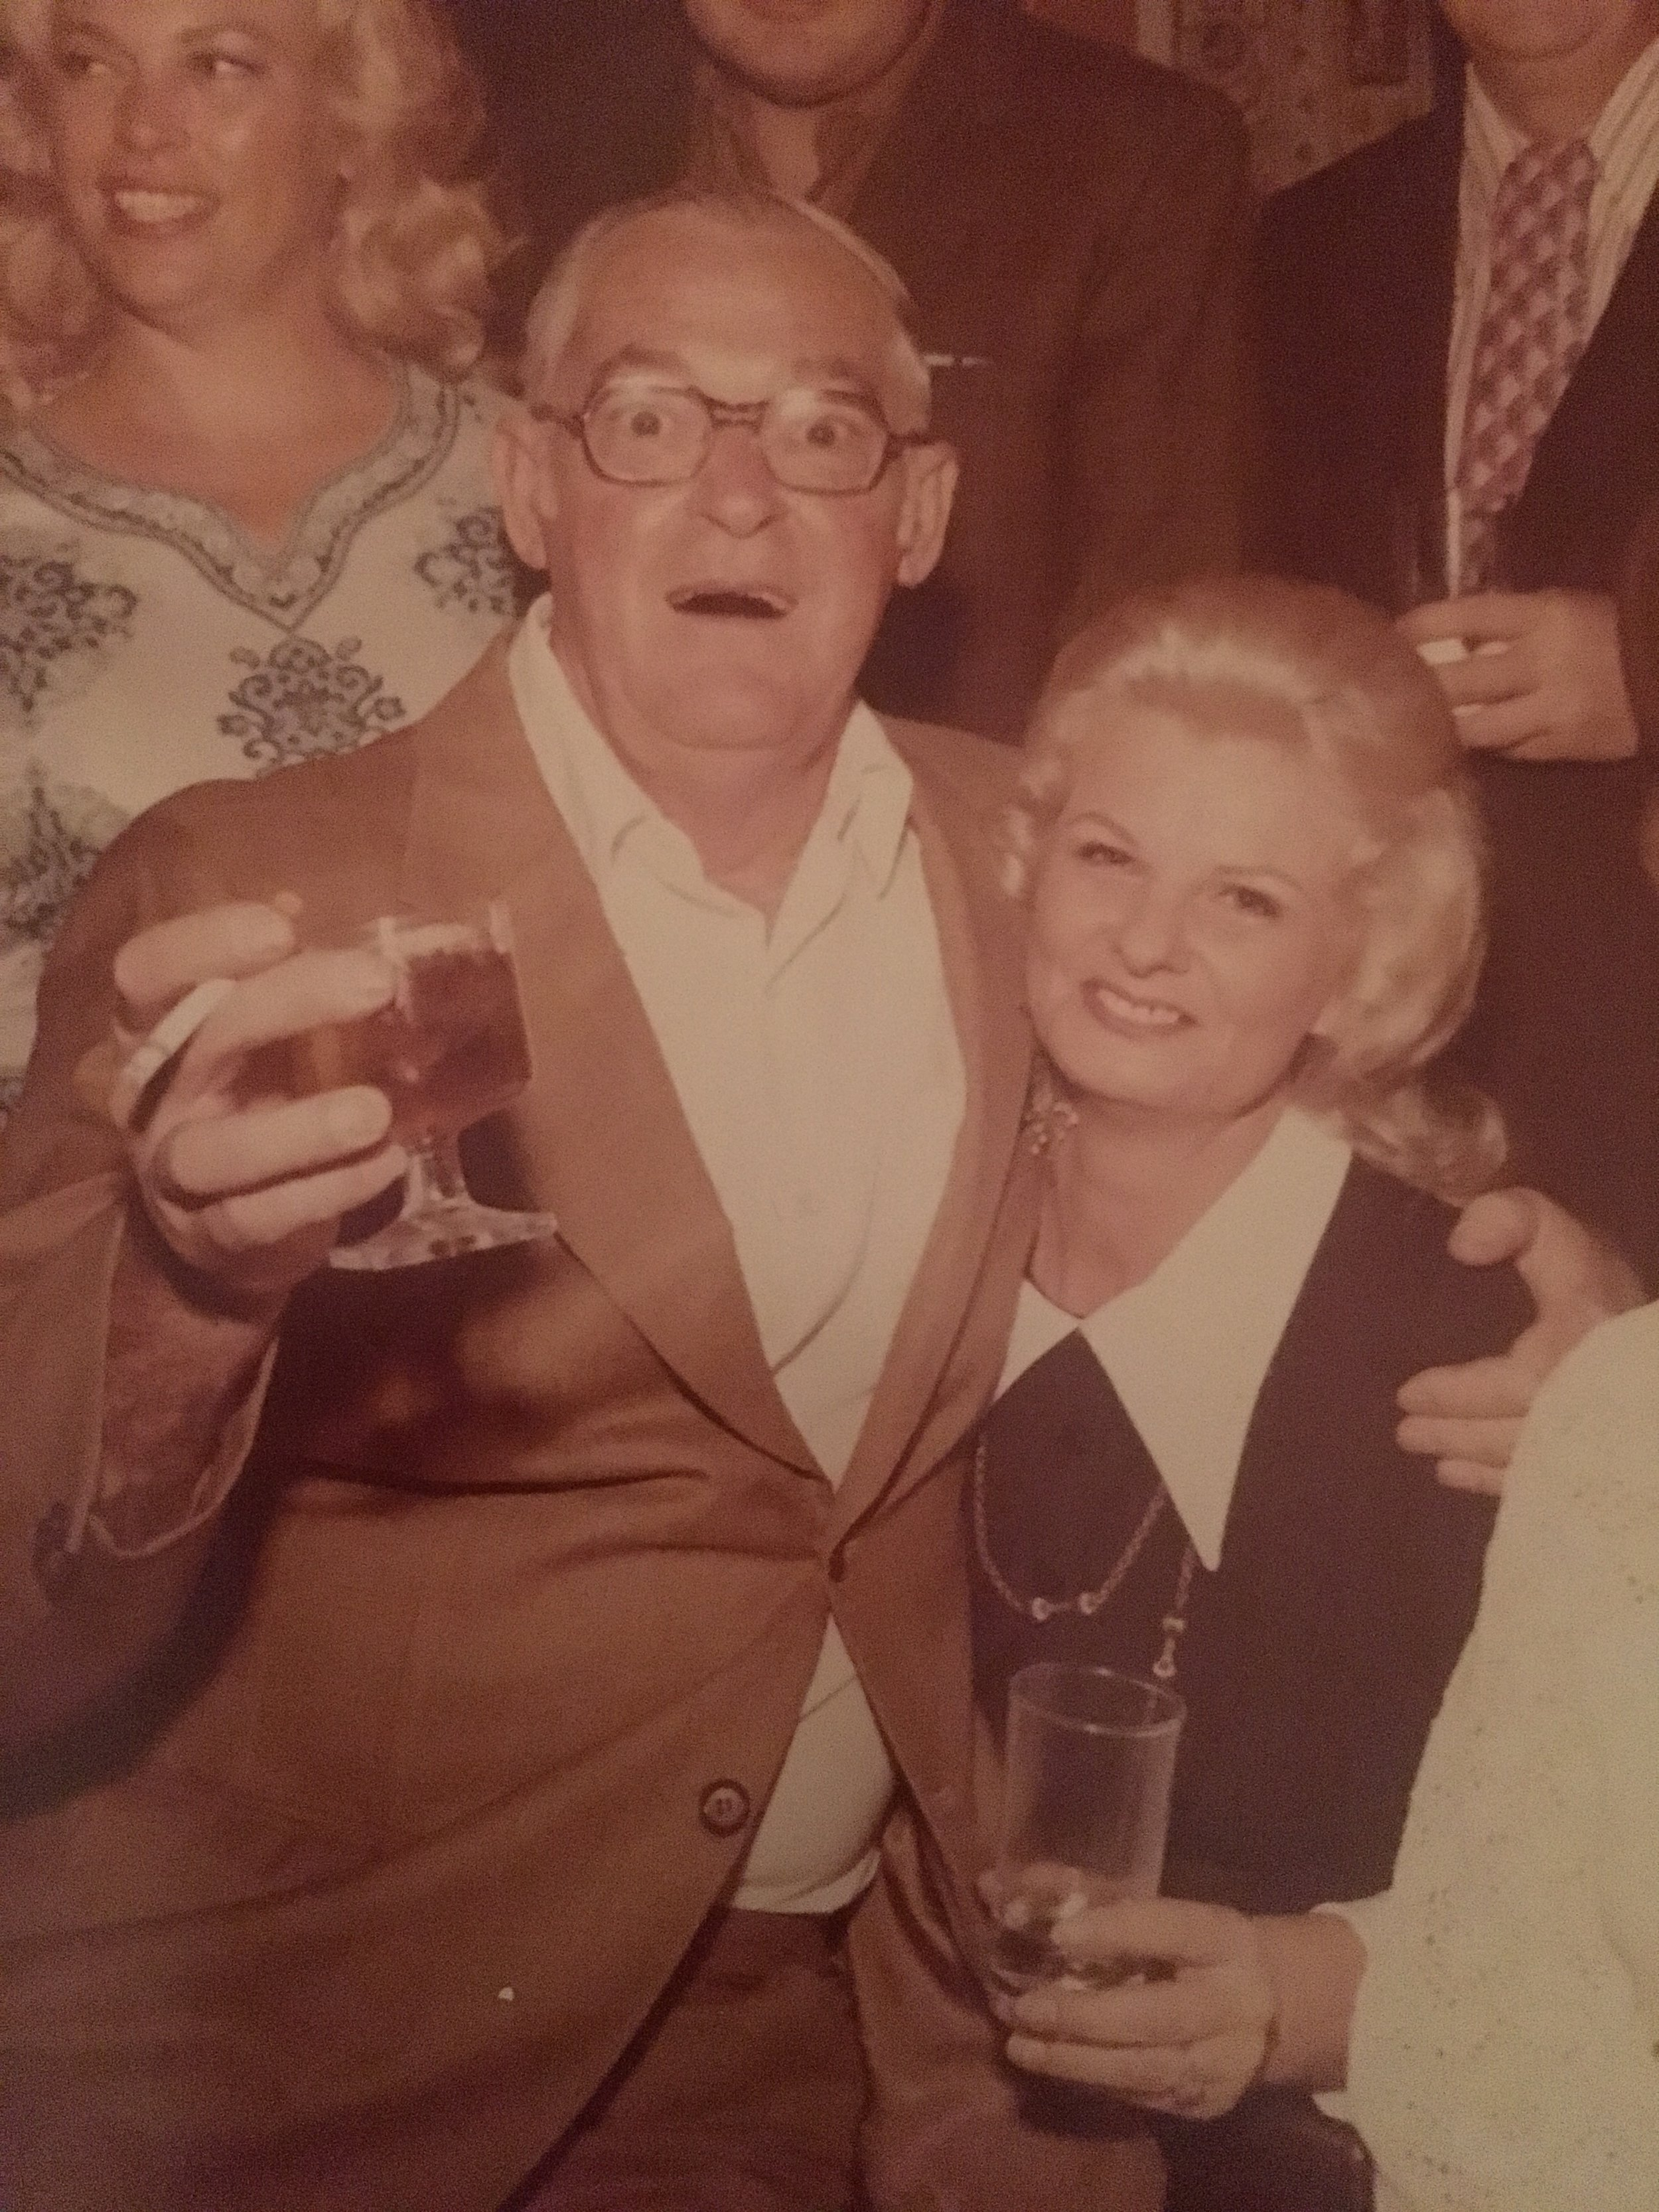 Uncle Ed (left) with one of his many drinks in hand.